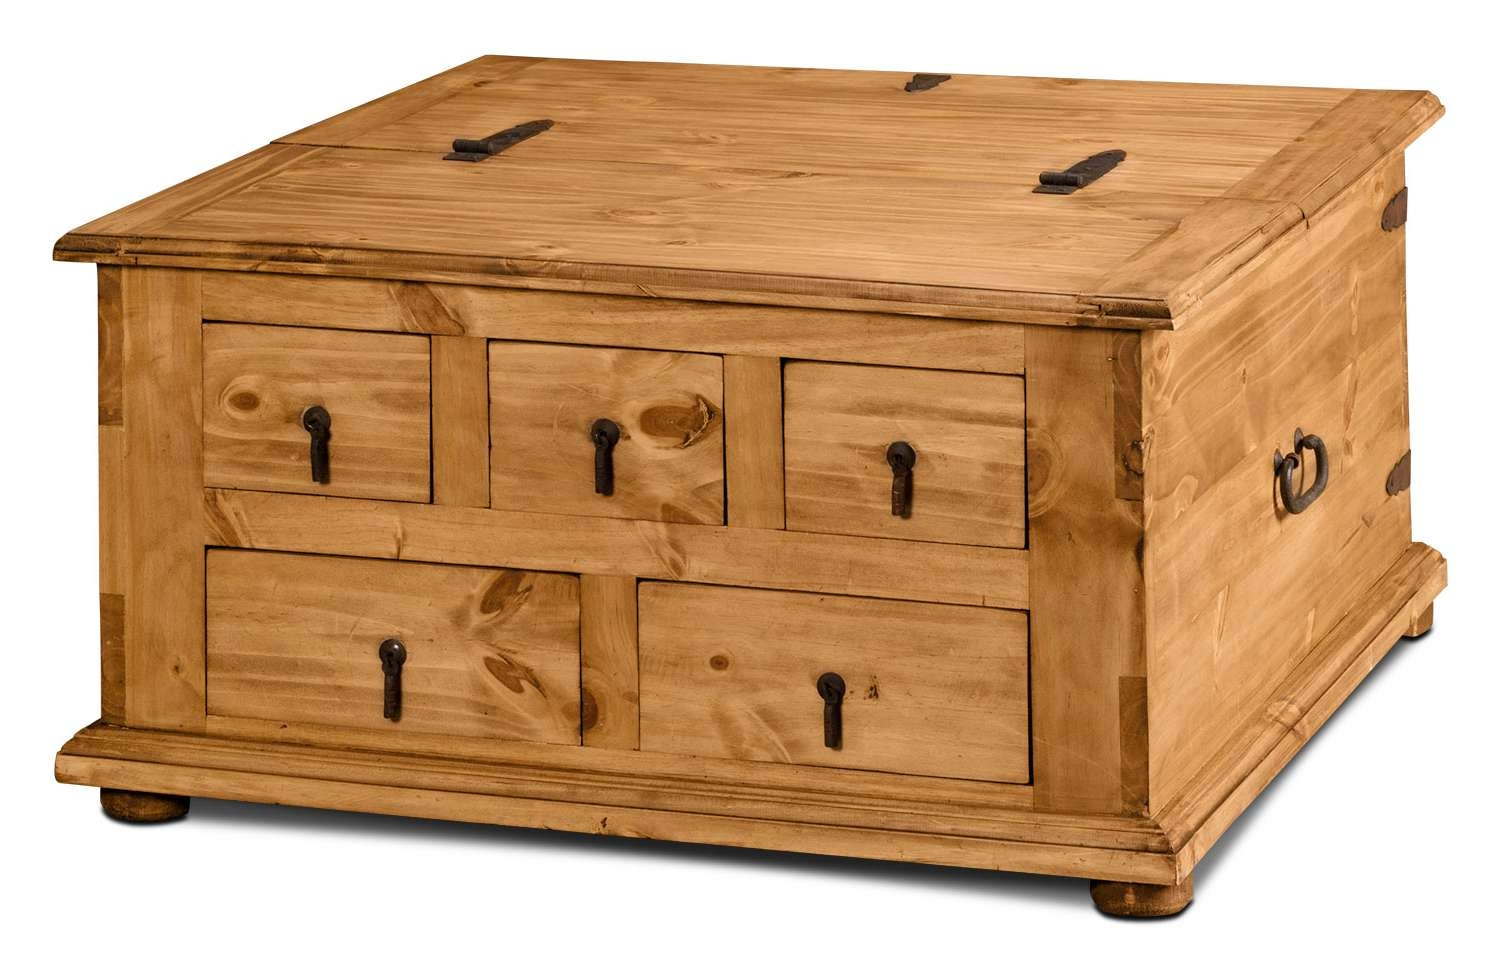 Famous Pine Coffee Tables With Storage In Santa Fe Rusticos Solid Pine Trunk Style Coffee Table With Storage (View 8 of 20)